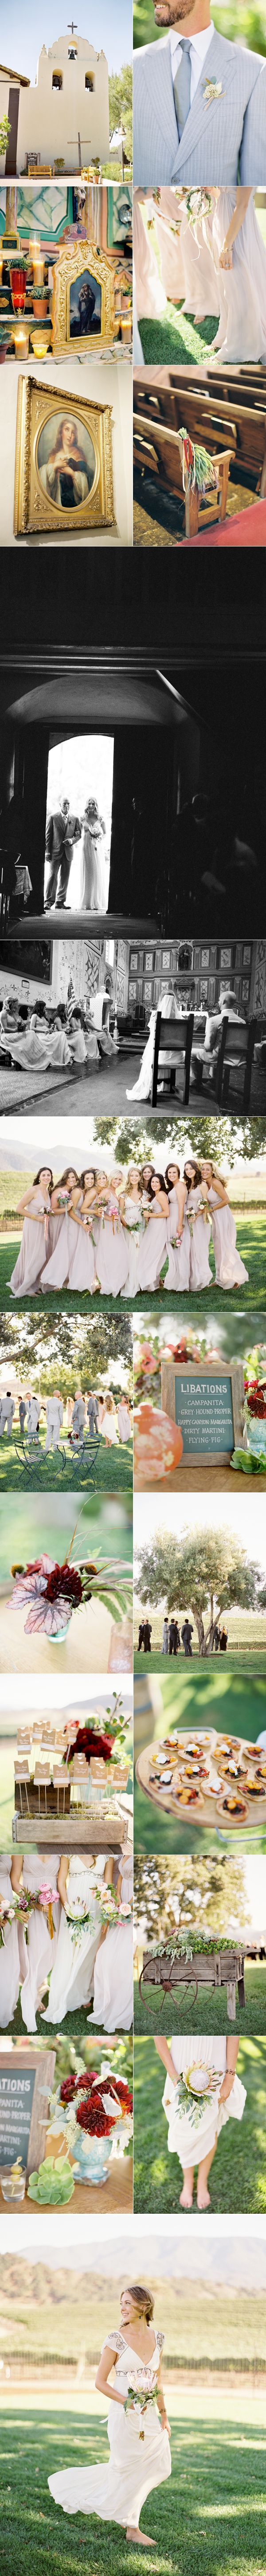 Santa Ynez Vineyard Wedding II